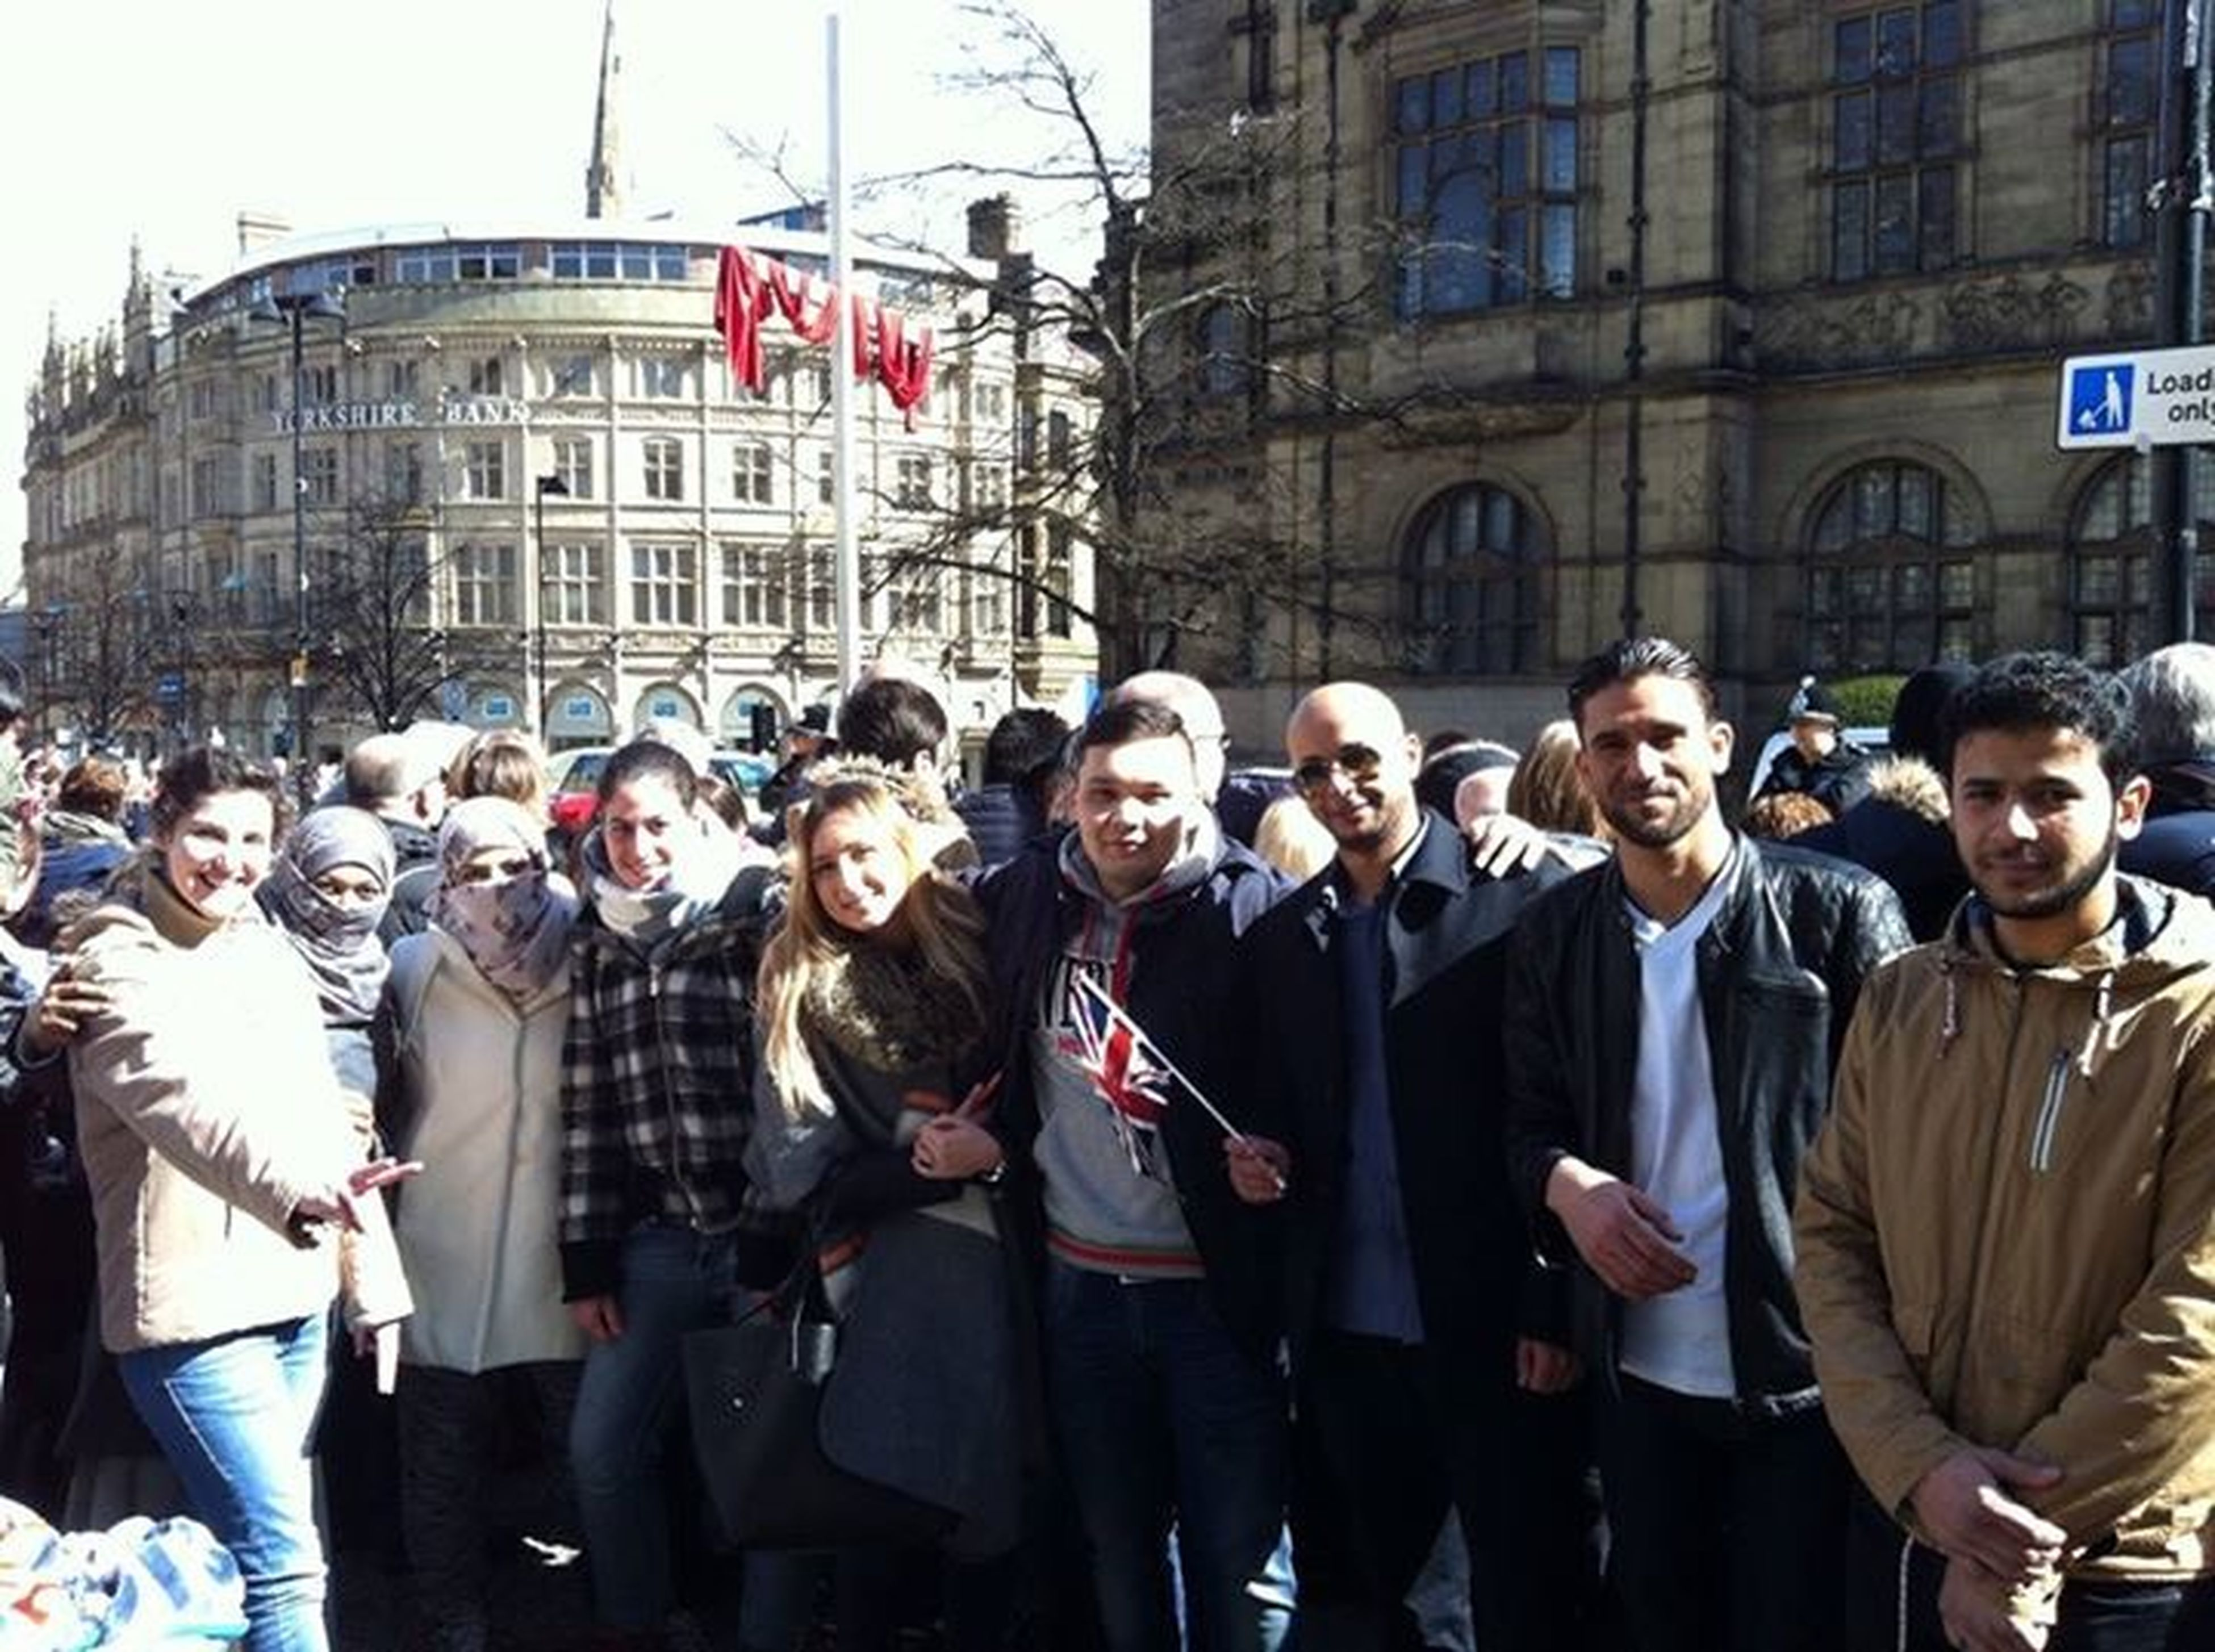 large group of people, lifestyles, building exterior, men, architecture, leisure activity, person, built structure, casual clothing, crowd, city, togetherness, city life, street, happiness, young adult, standing, day, mixed age range